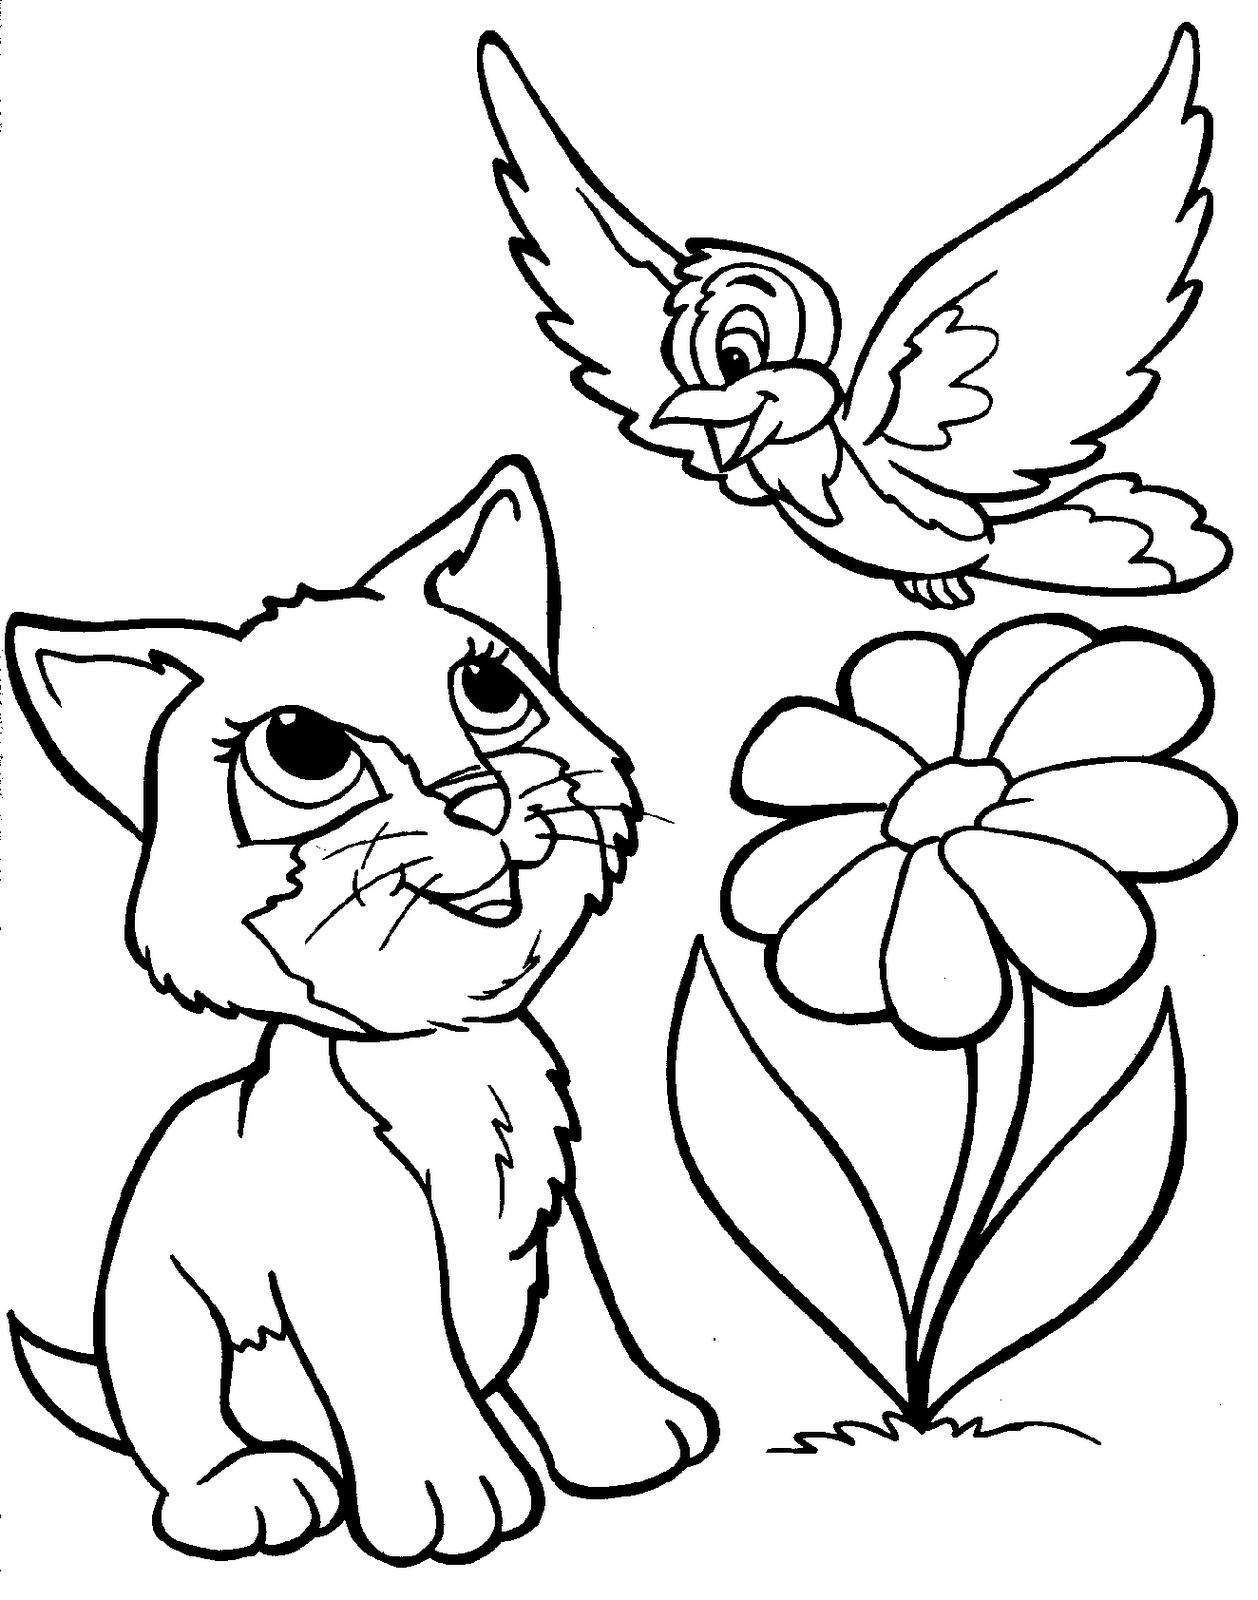 a cat and bird coloring for kids animal coloring pages kidsdrawing free coloring pages online - Coloring Book Animals